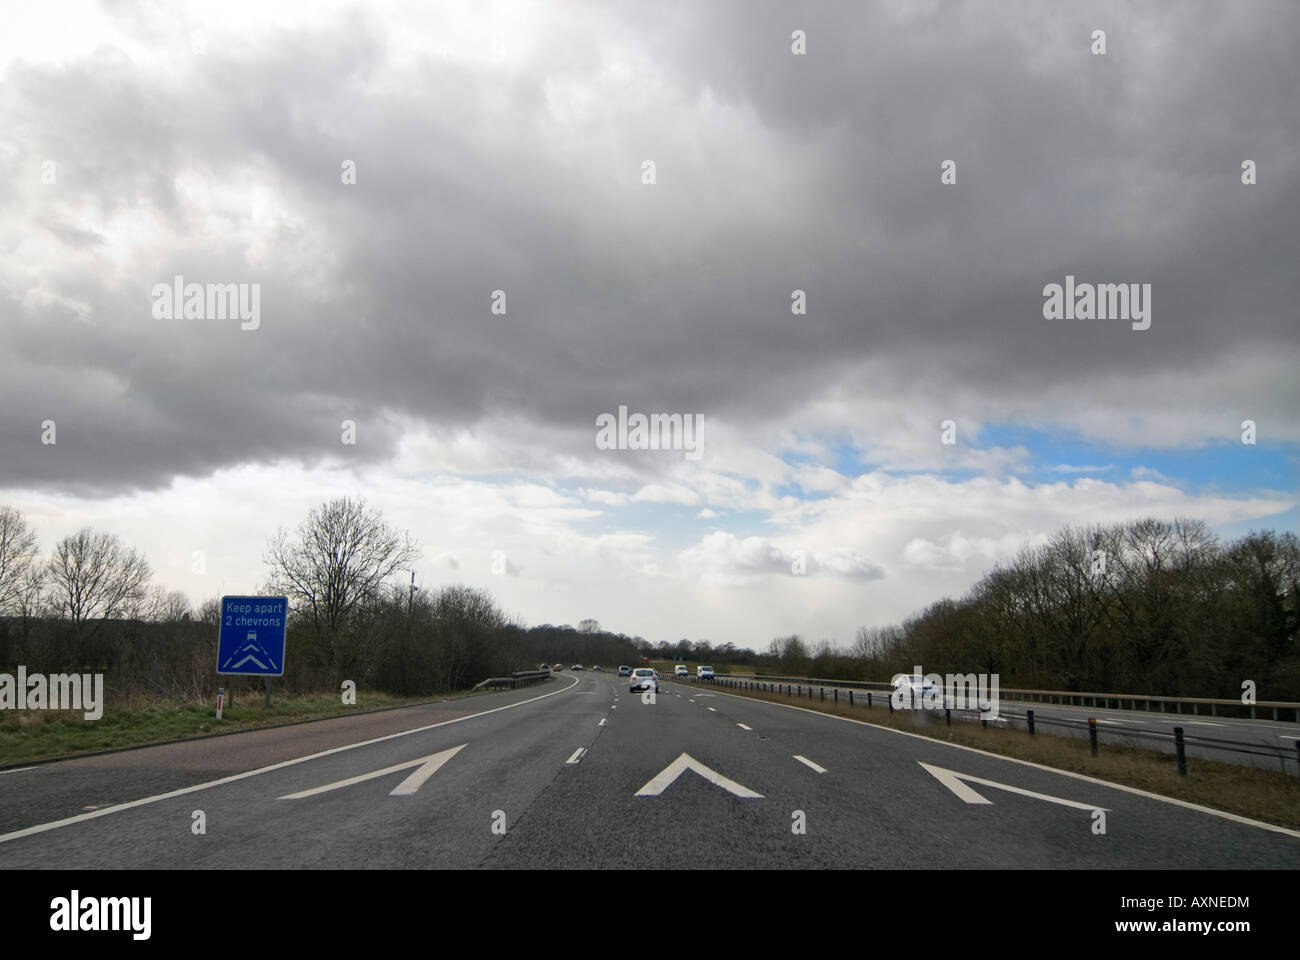 """Horizontal wide angle of the """"two Chevron apart"""" sign and road markings on the motorway on a sunny day Stock Photo"""